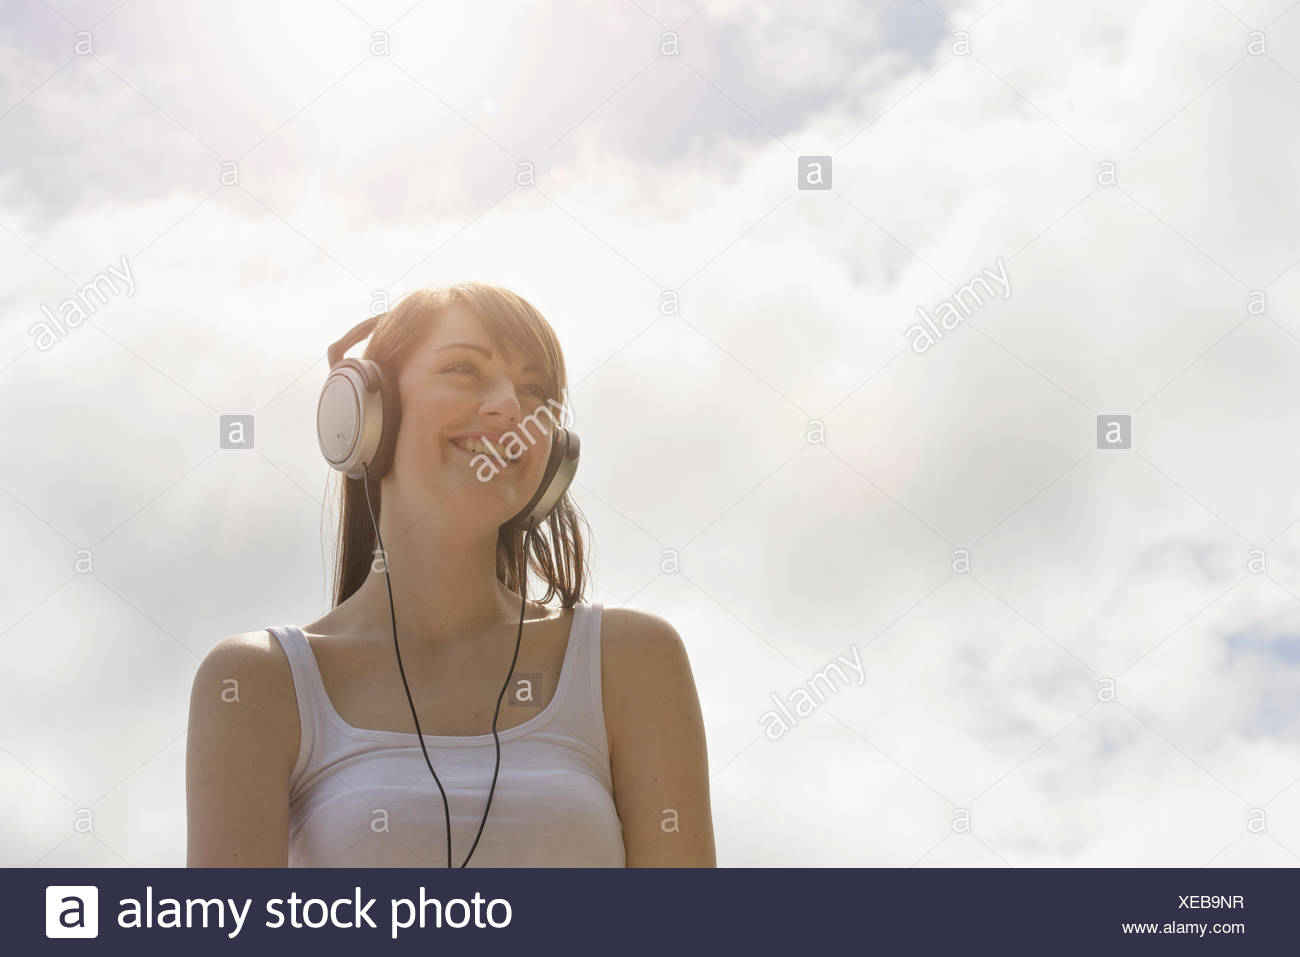 Young woman wearing headphones under bright sunny sky - Stock Image